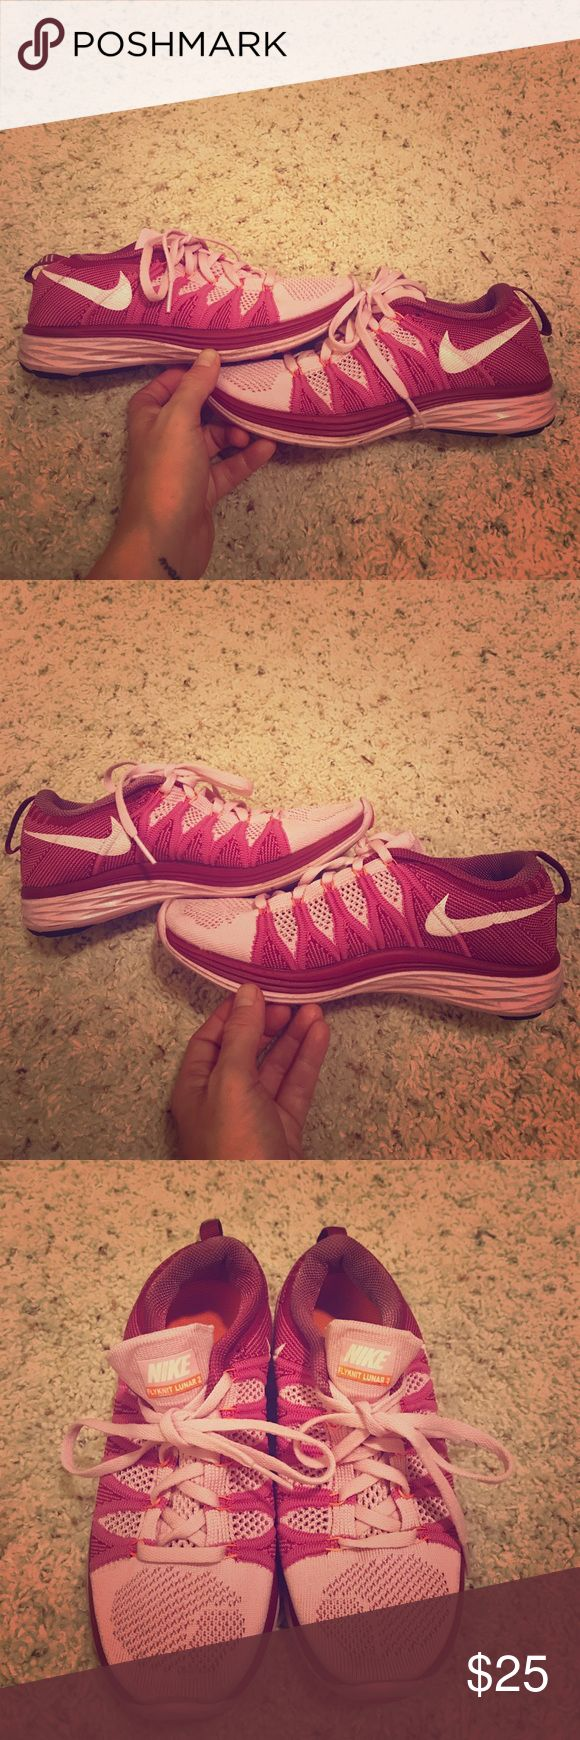 Women's Nike Flyknit Lunar 3 Pink/Purple sneakers These shoes are awesome for the price! They are lightly used and show some signs of wear, as shown in pictures, but are in really good shape still. Great for working out or going out to lunch. Nike Shoes Sneakers